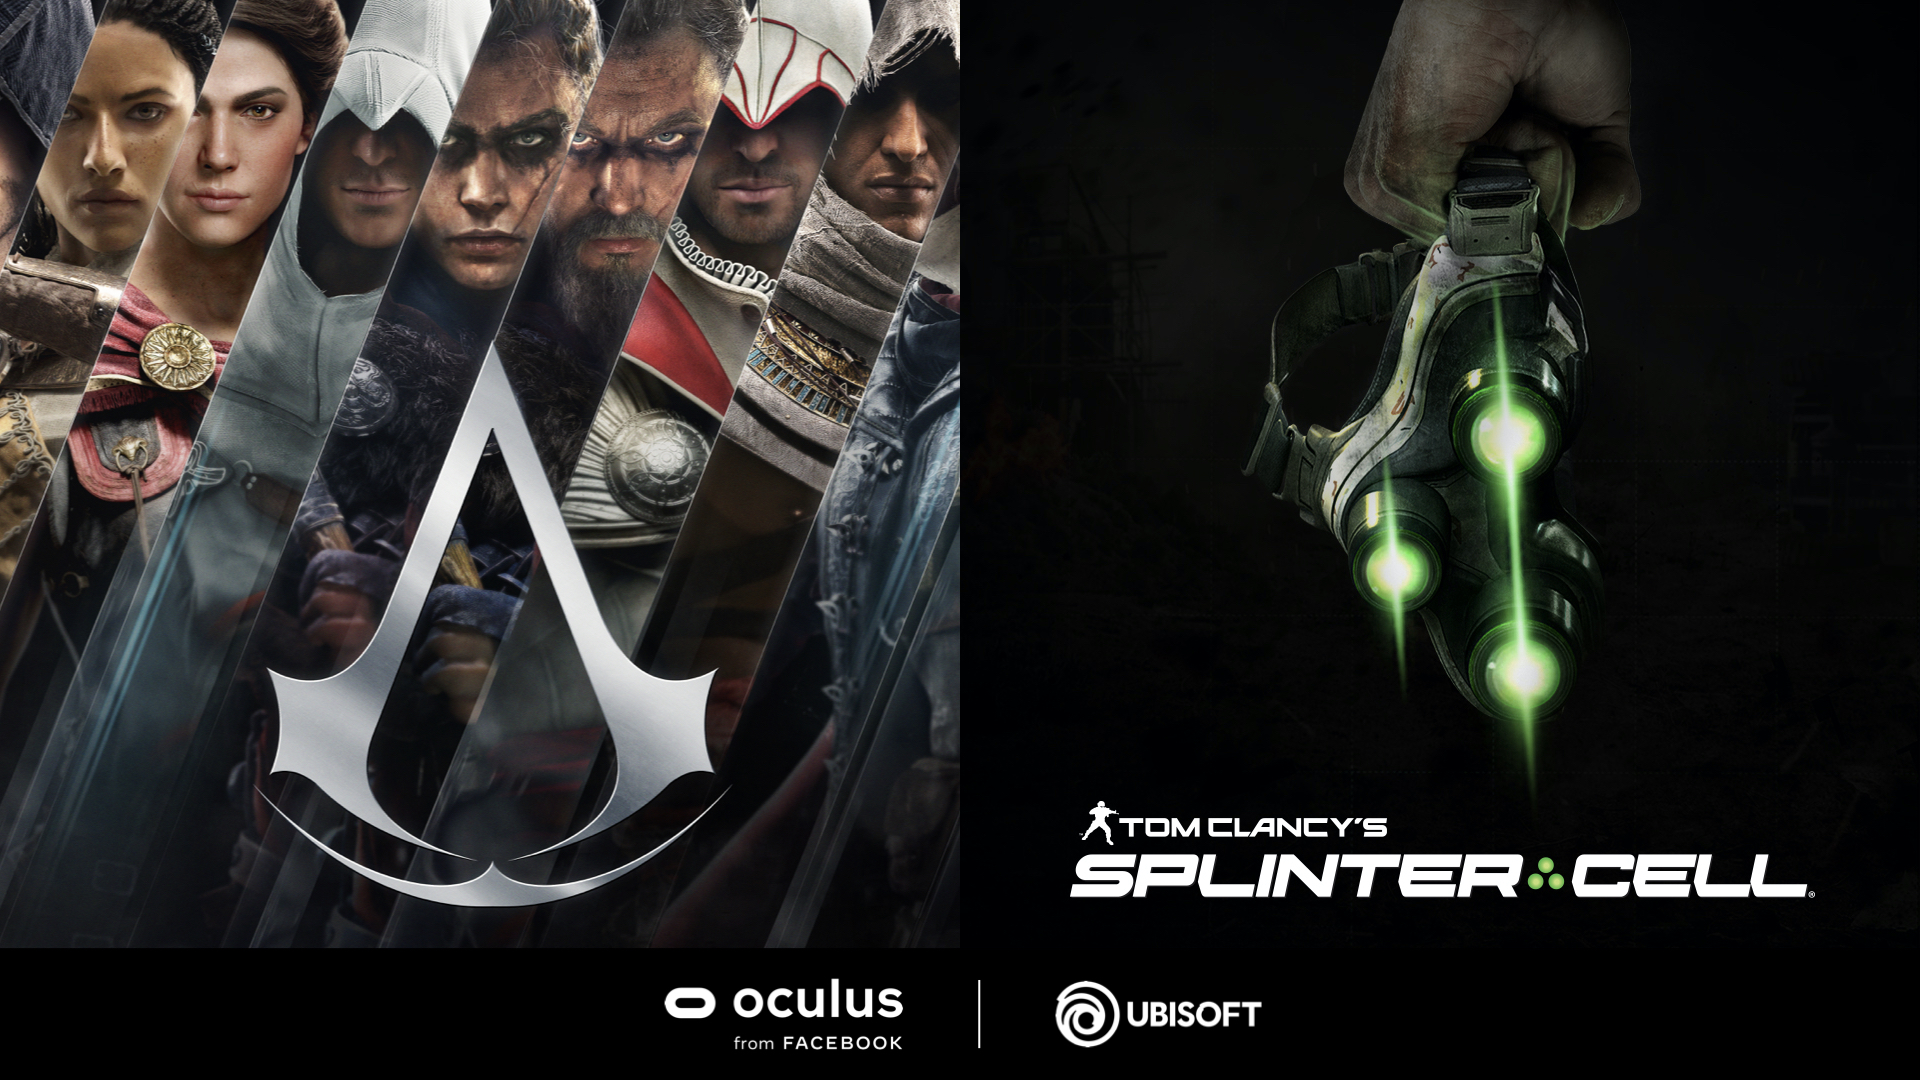 Splinter Cell Assassin's Creed Oculus Quest 2 VR Facebook Ubisoft